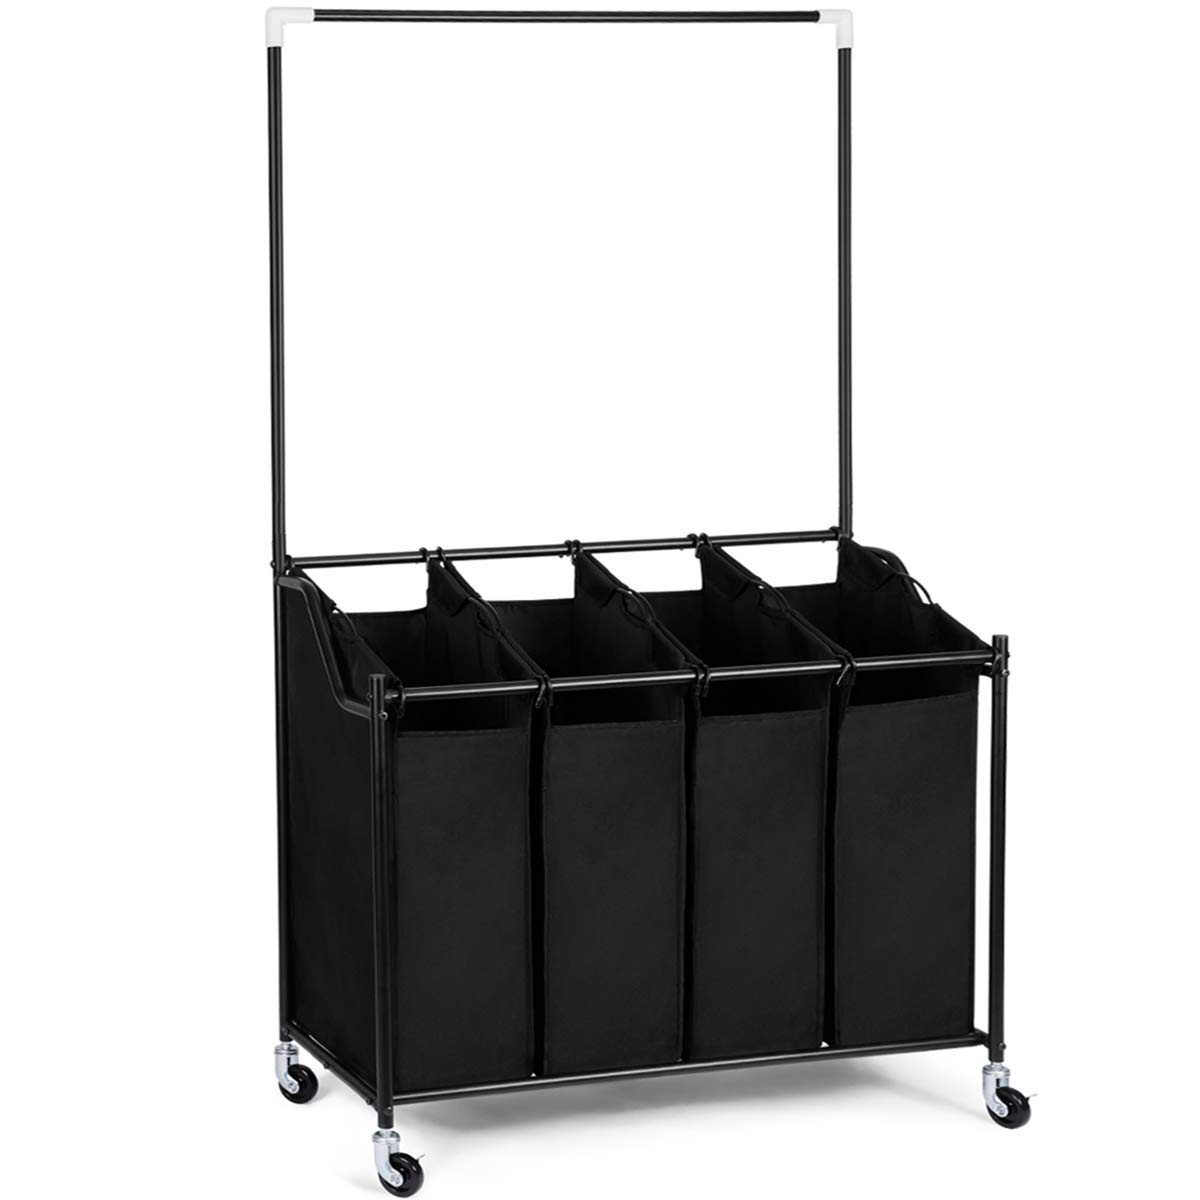 HOMEIDEAS Laundry Sorter with Hanging Bar 4-Bag Rolling Laundry Sorter Storage Cart 4 Section on Heavy-Duty Wheels, Black